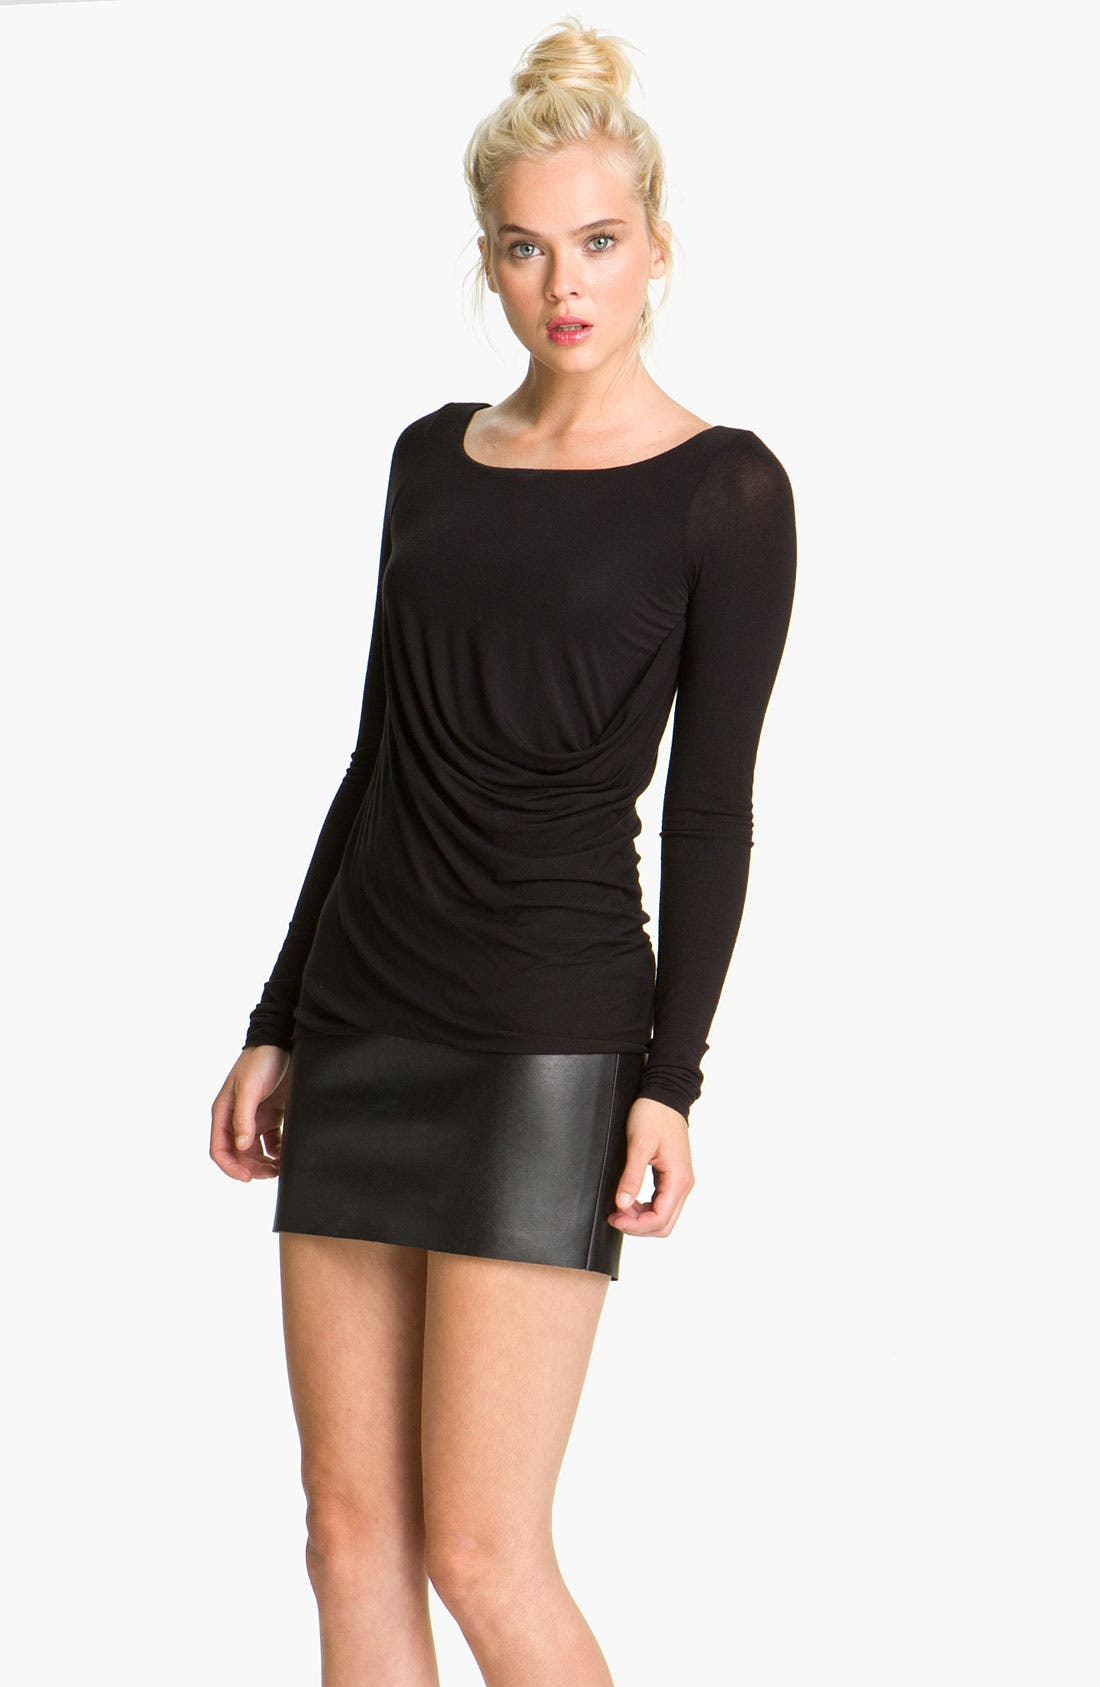 Alternate Image 1 Selected - Bailey 44 'Drop Out' Faux Leather Trim Dress